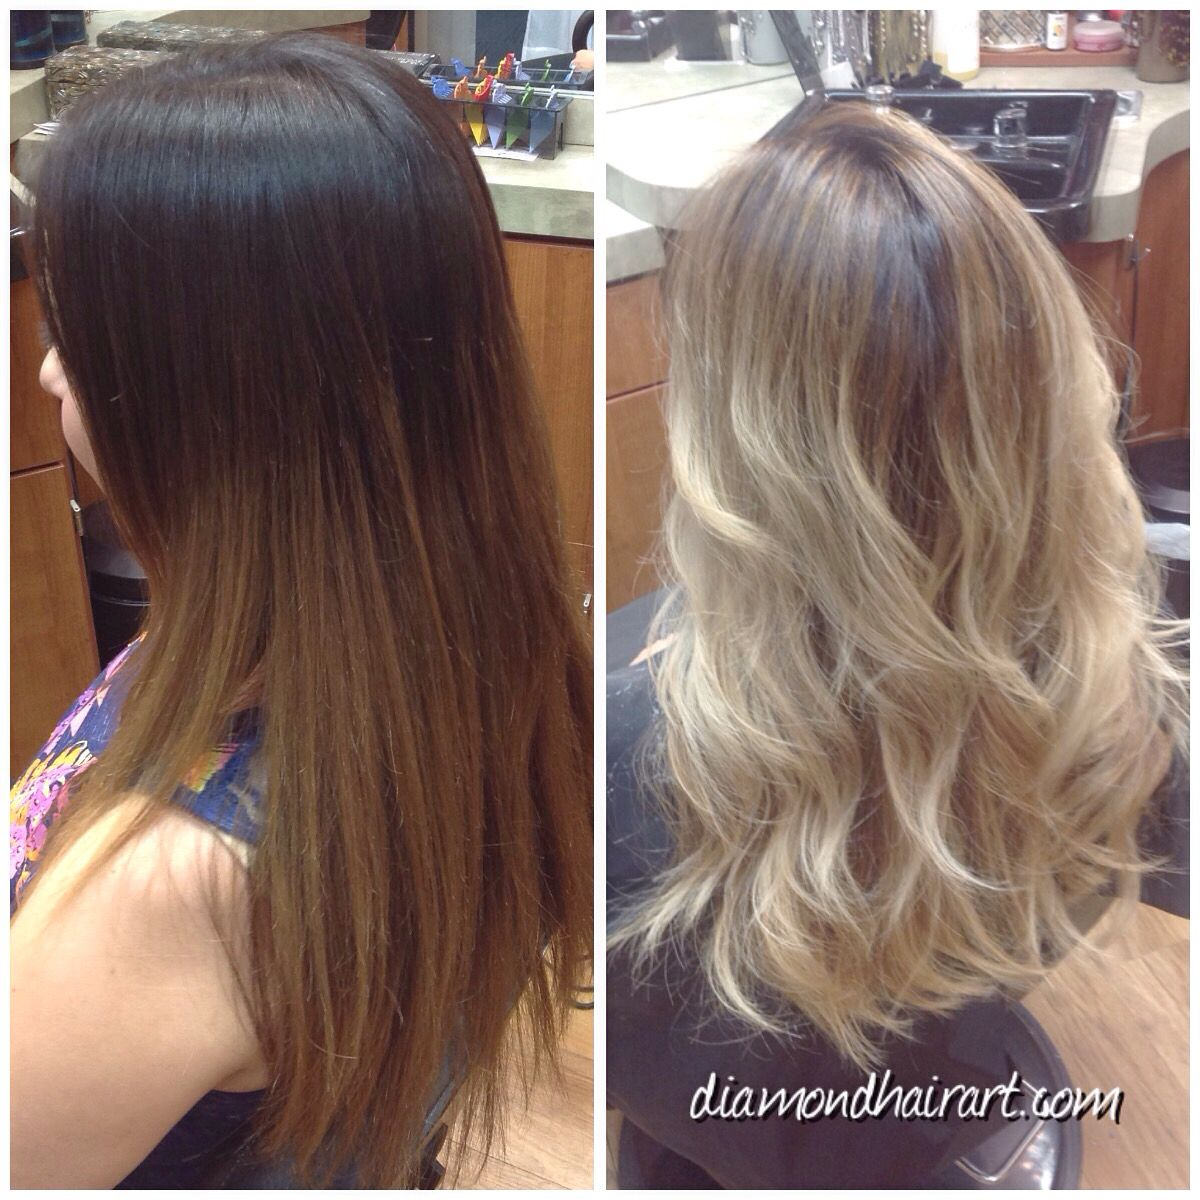 Before and after blonding using balayage techniques and olaplex